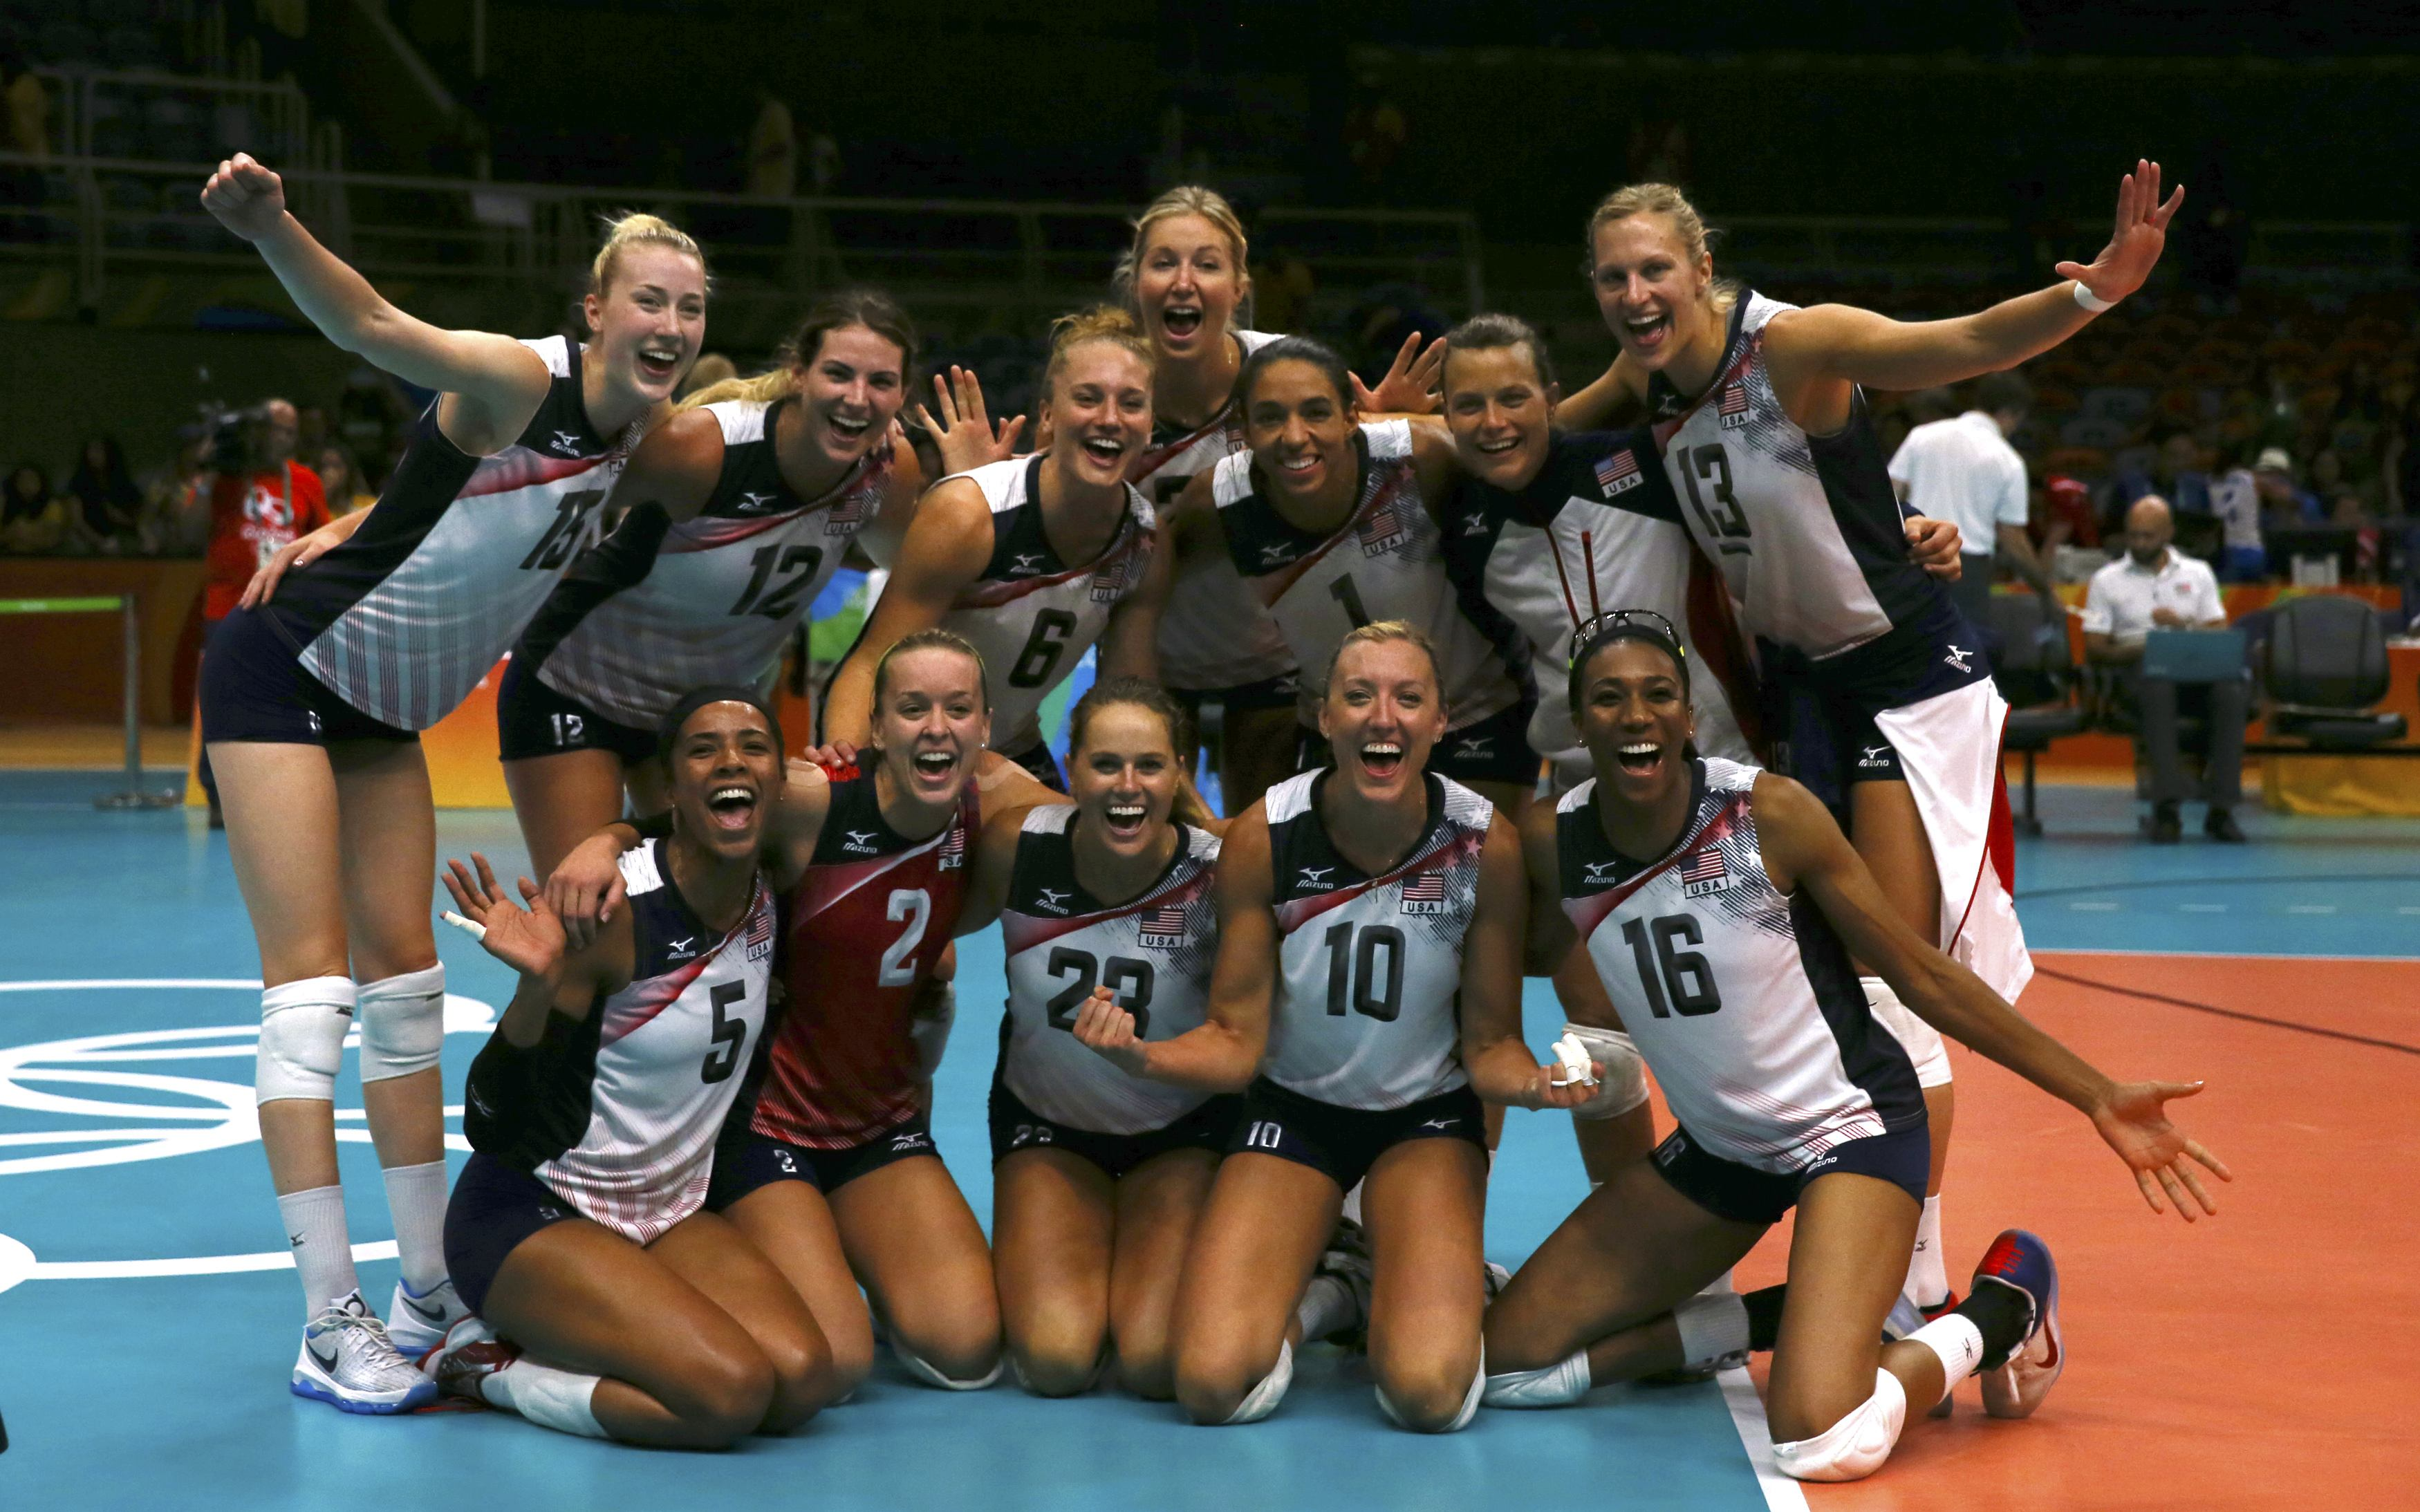 2016 Rio Olympics - Volleyball - Women's Preliminary - Pool B USA v Puerto Rico - Maracanazinho - Rio de Janeiro, Brazil - 06/08/2016. USA team plyaers celebrate after defeating Puerto Rico. REUTERS/Marcelo del Pozo FOR EDITORIAL USE ONLY. NOT FOR SALE FOR MARKETING OR ADVERTISING CAMPAIGNS.